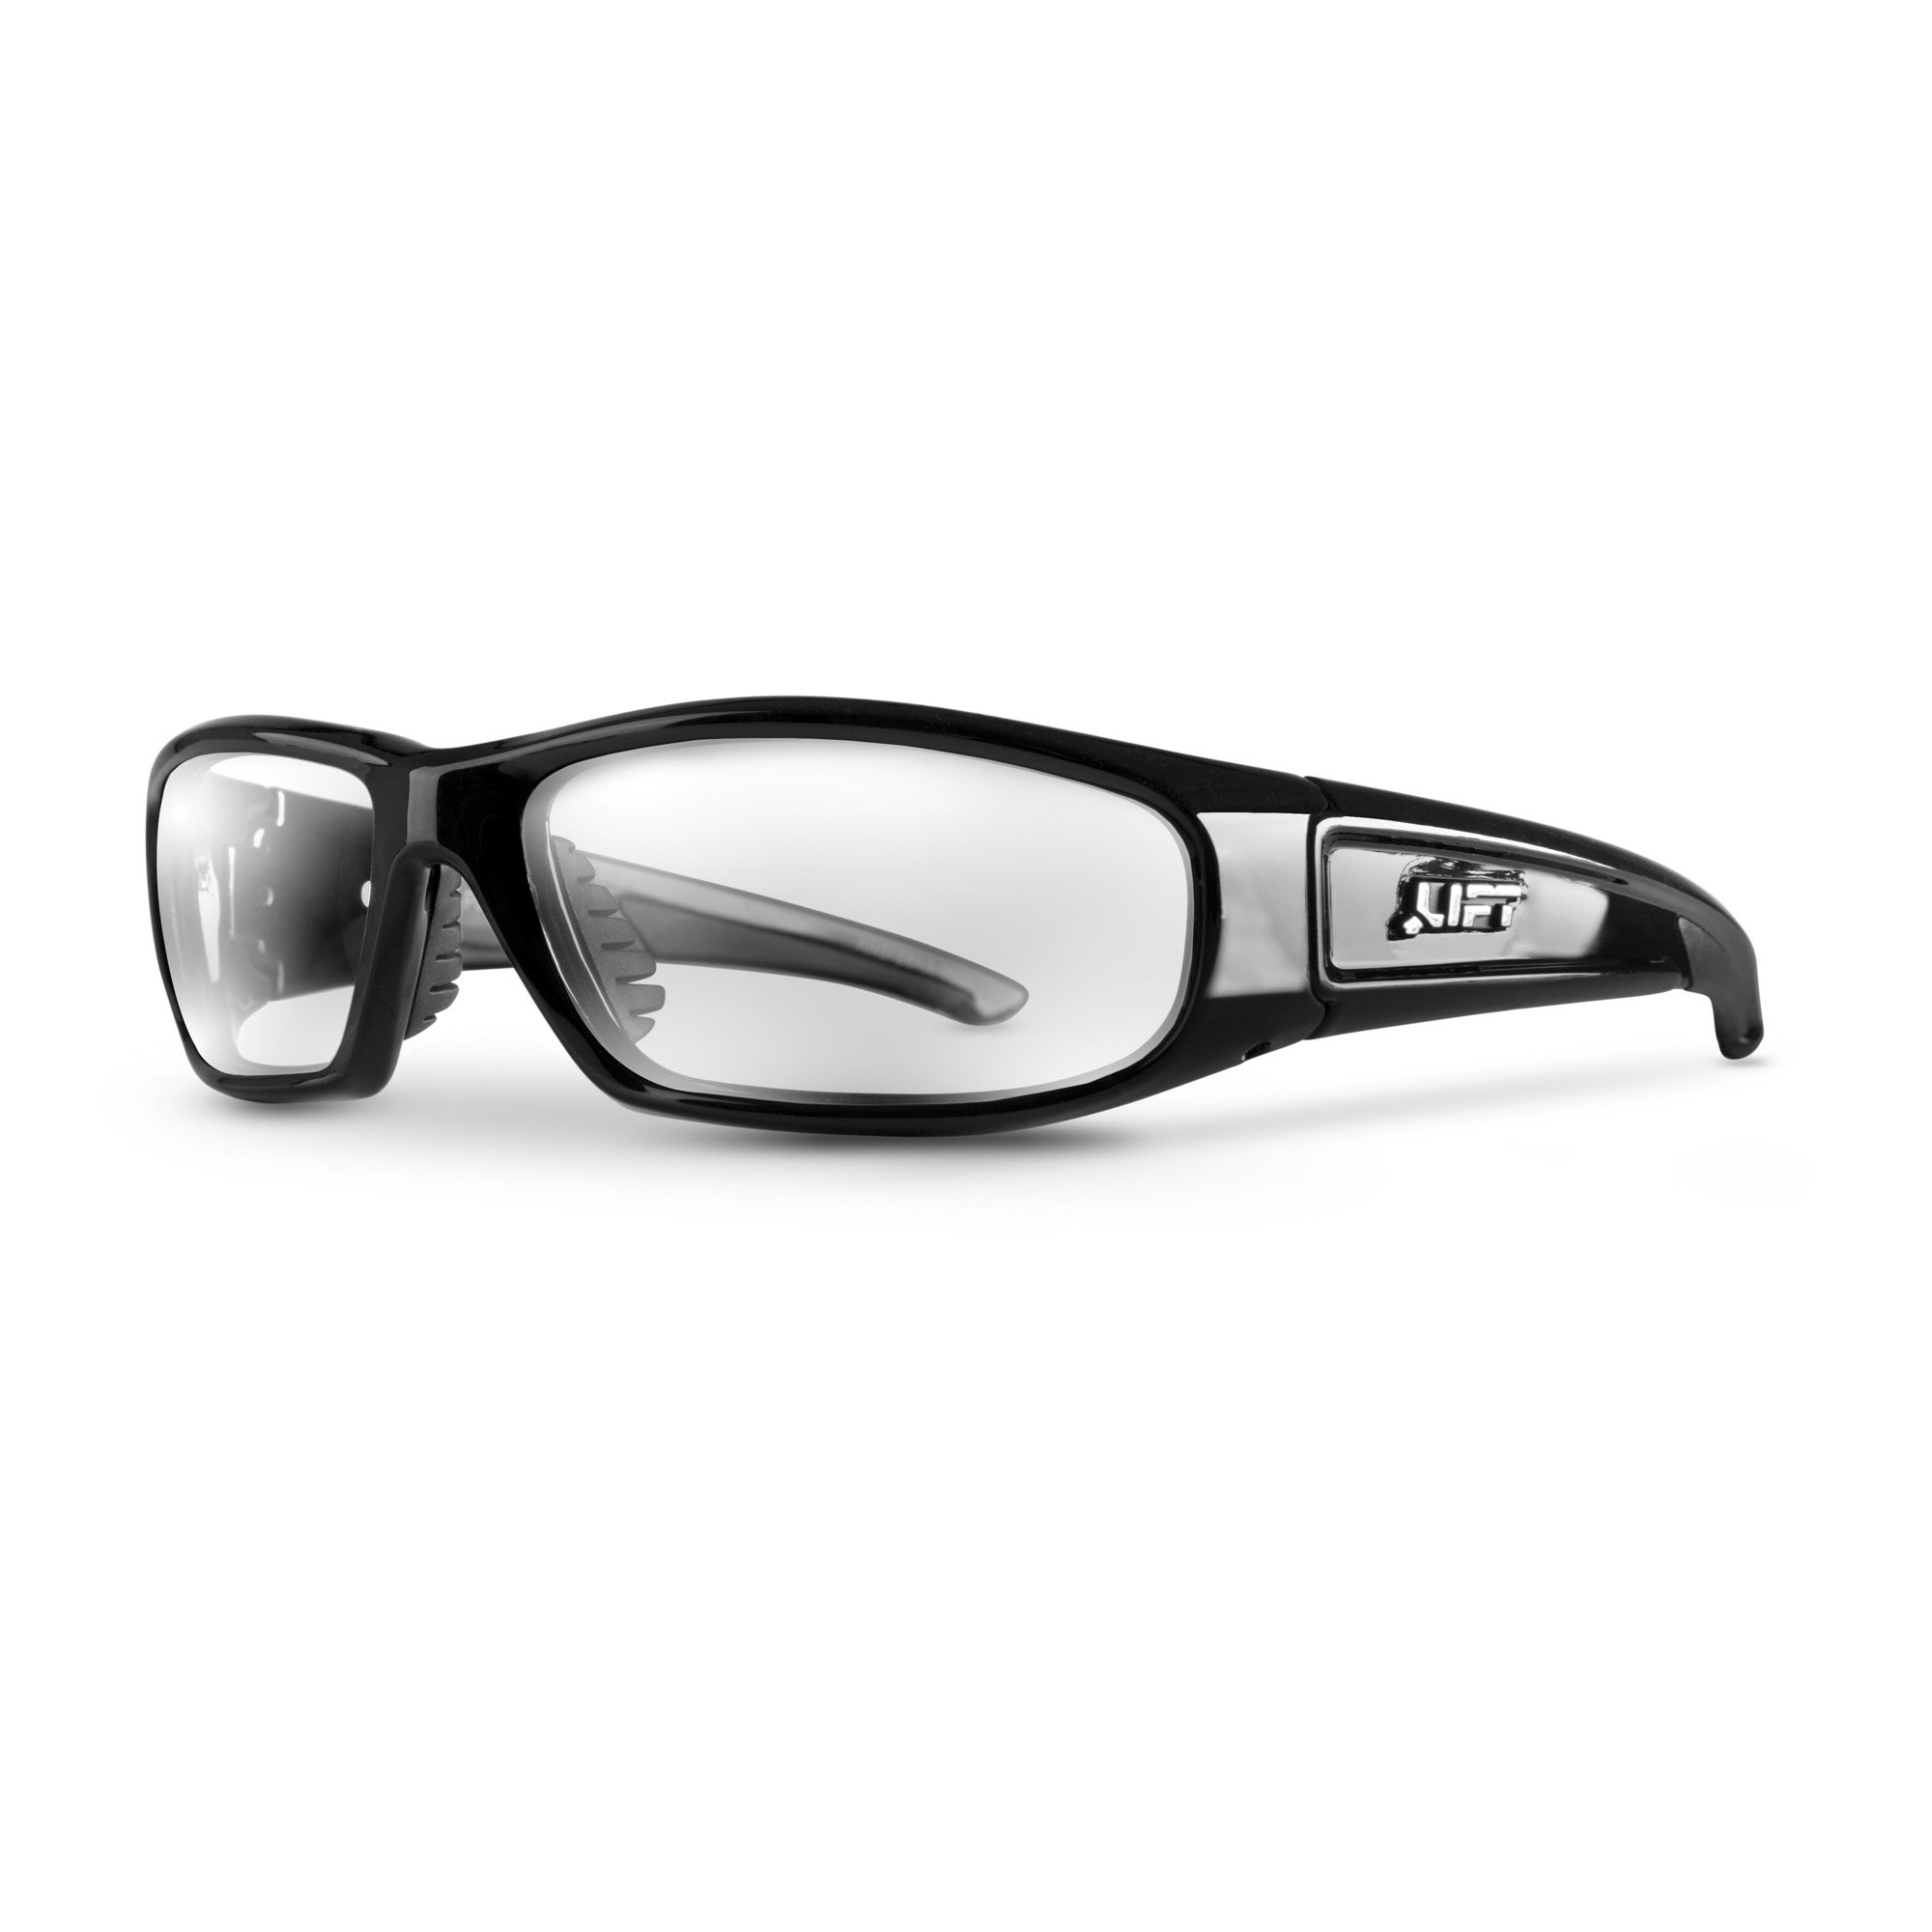 LIFT Safety Switch Safety Glasses (Black Frame/Clear Lens)